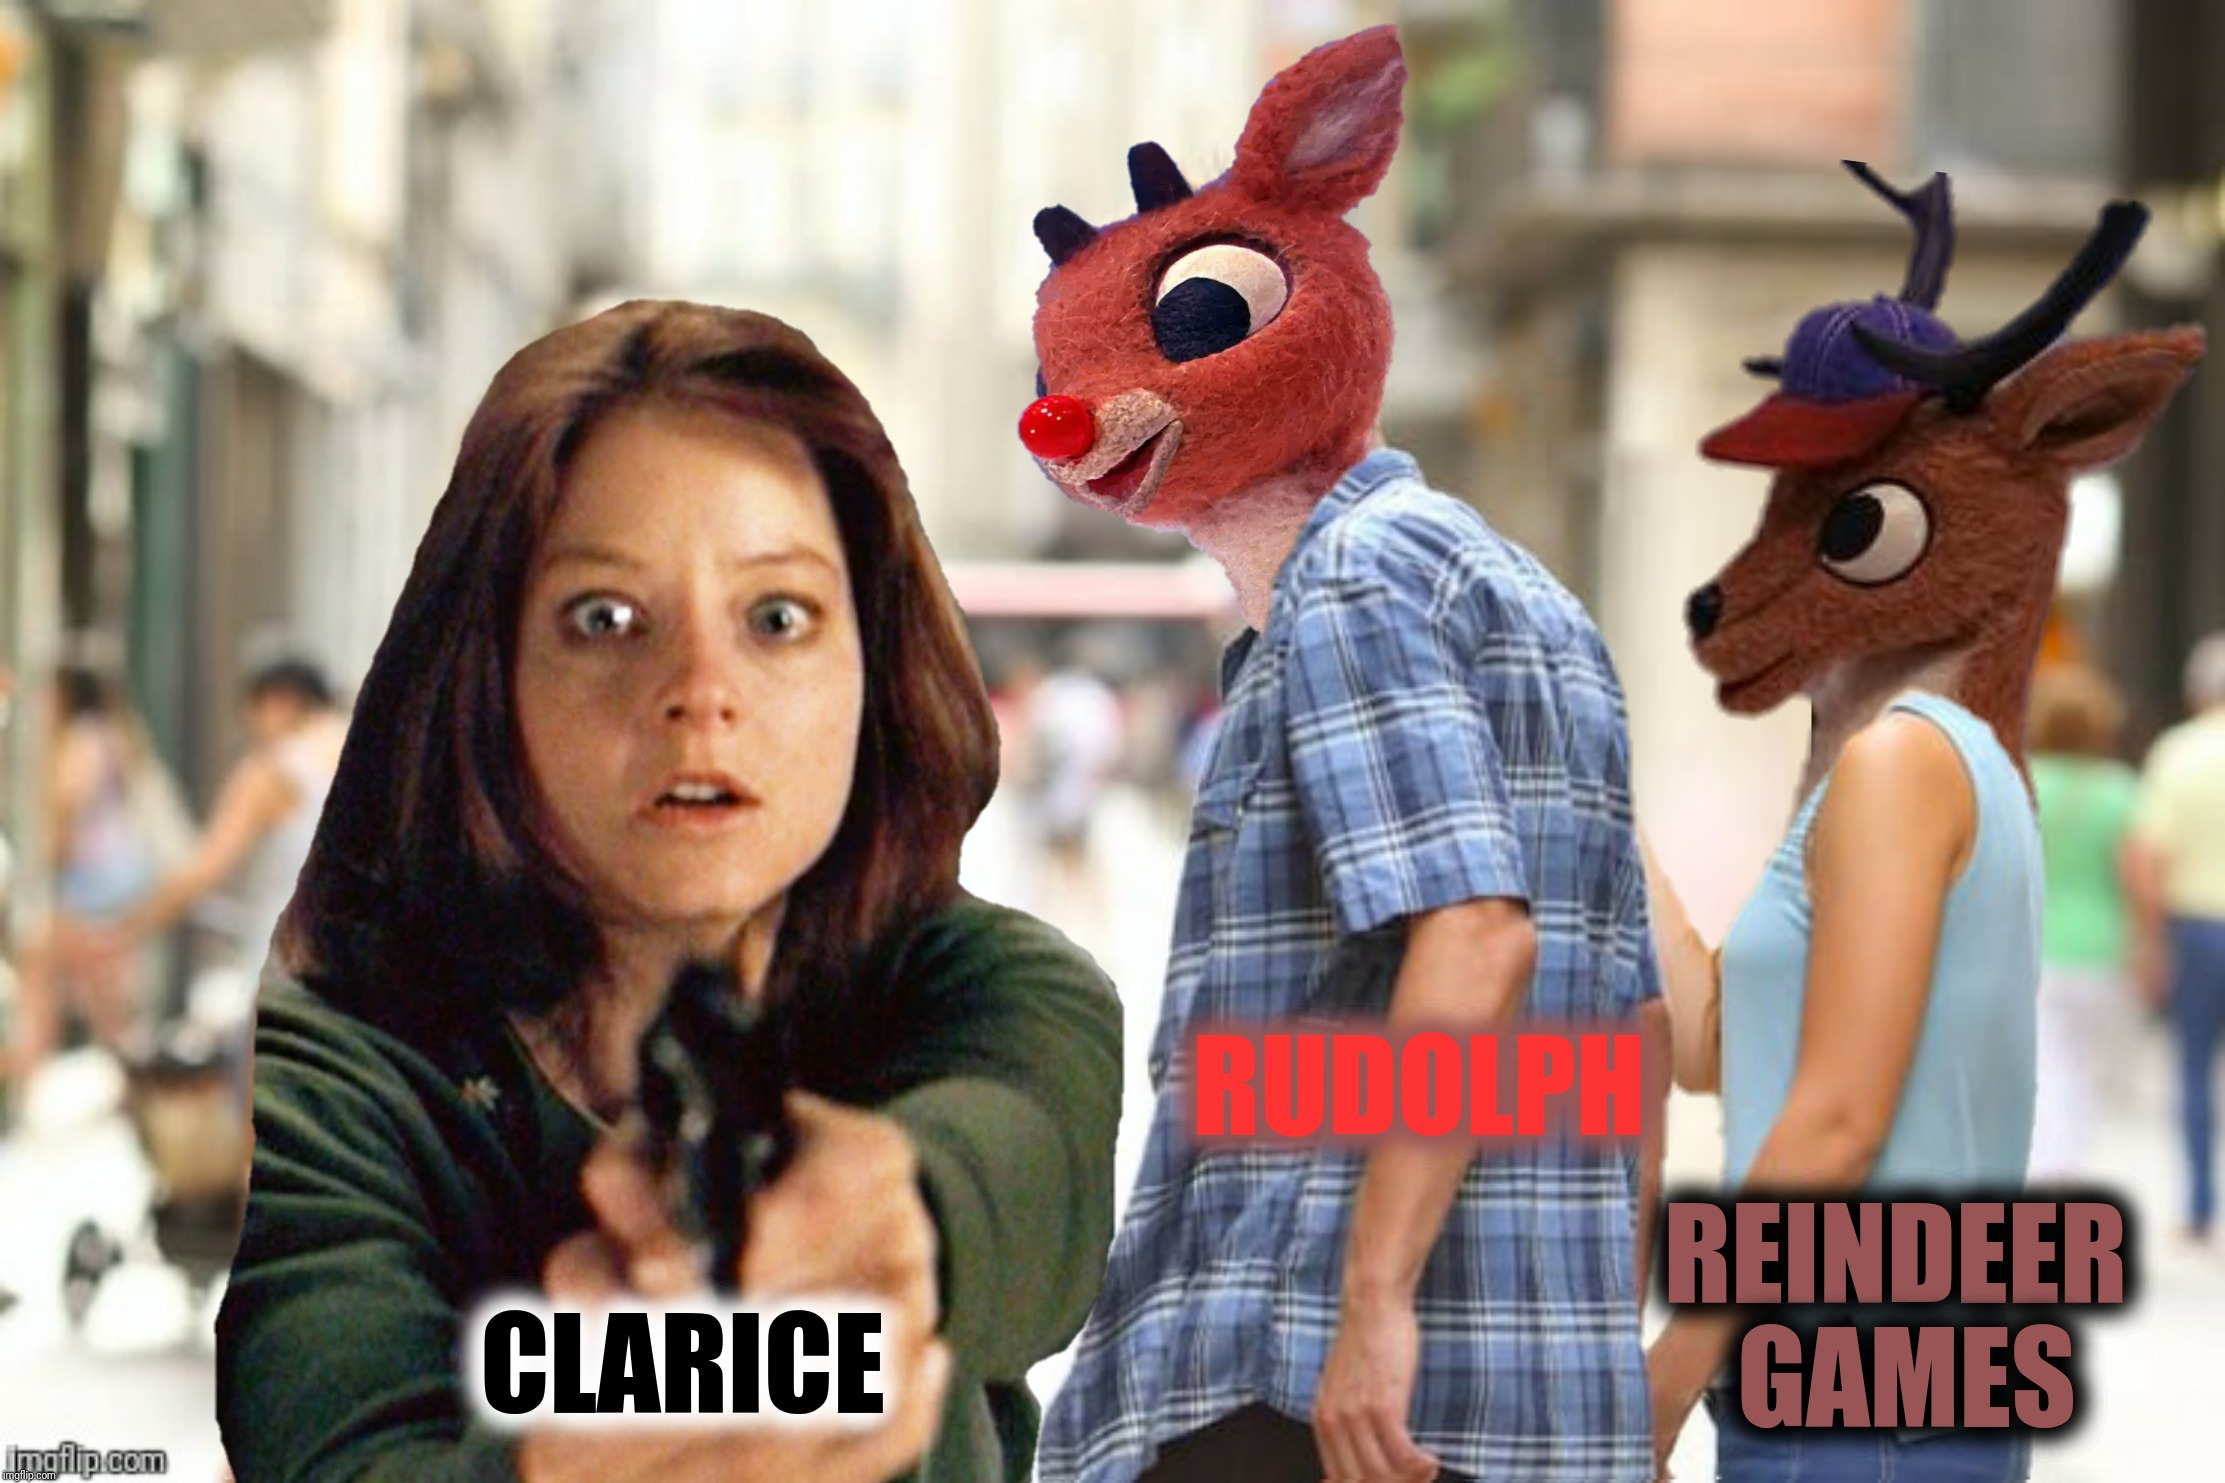 Bad Photoshop Sunday presents:  The Silence Of The Reindeer |  RUDOLPH; REINDEER GAMES; CLARICE | image tagged in bad photoshop sunday,rudolph the red nosed reindeer,silence of the lambs,clarice,reindeer games | made w/ Imgflip meme maker